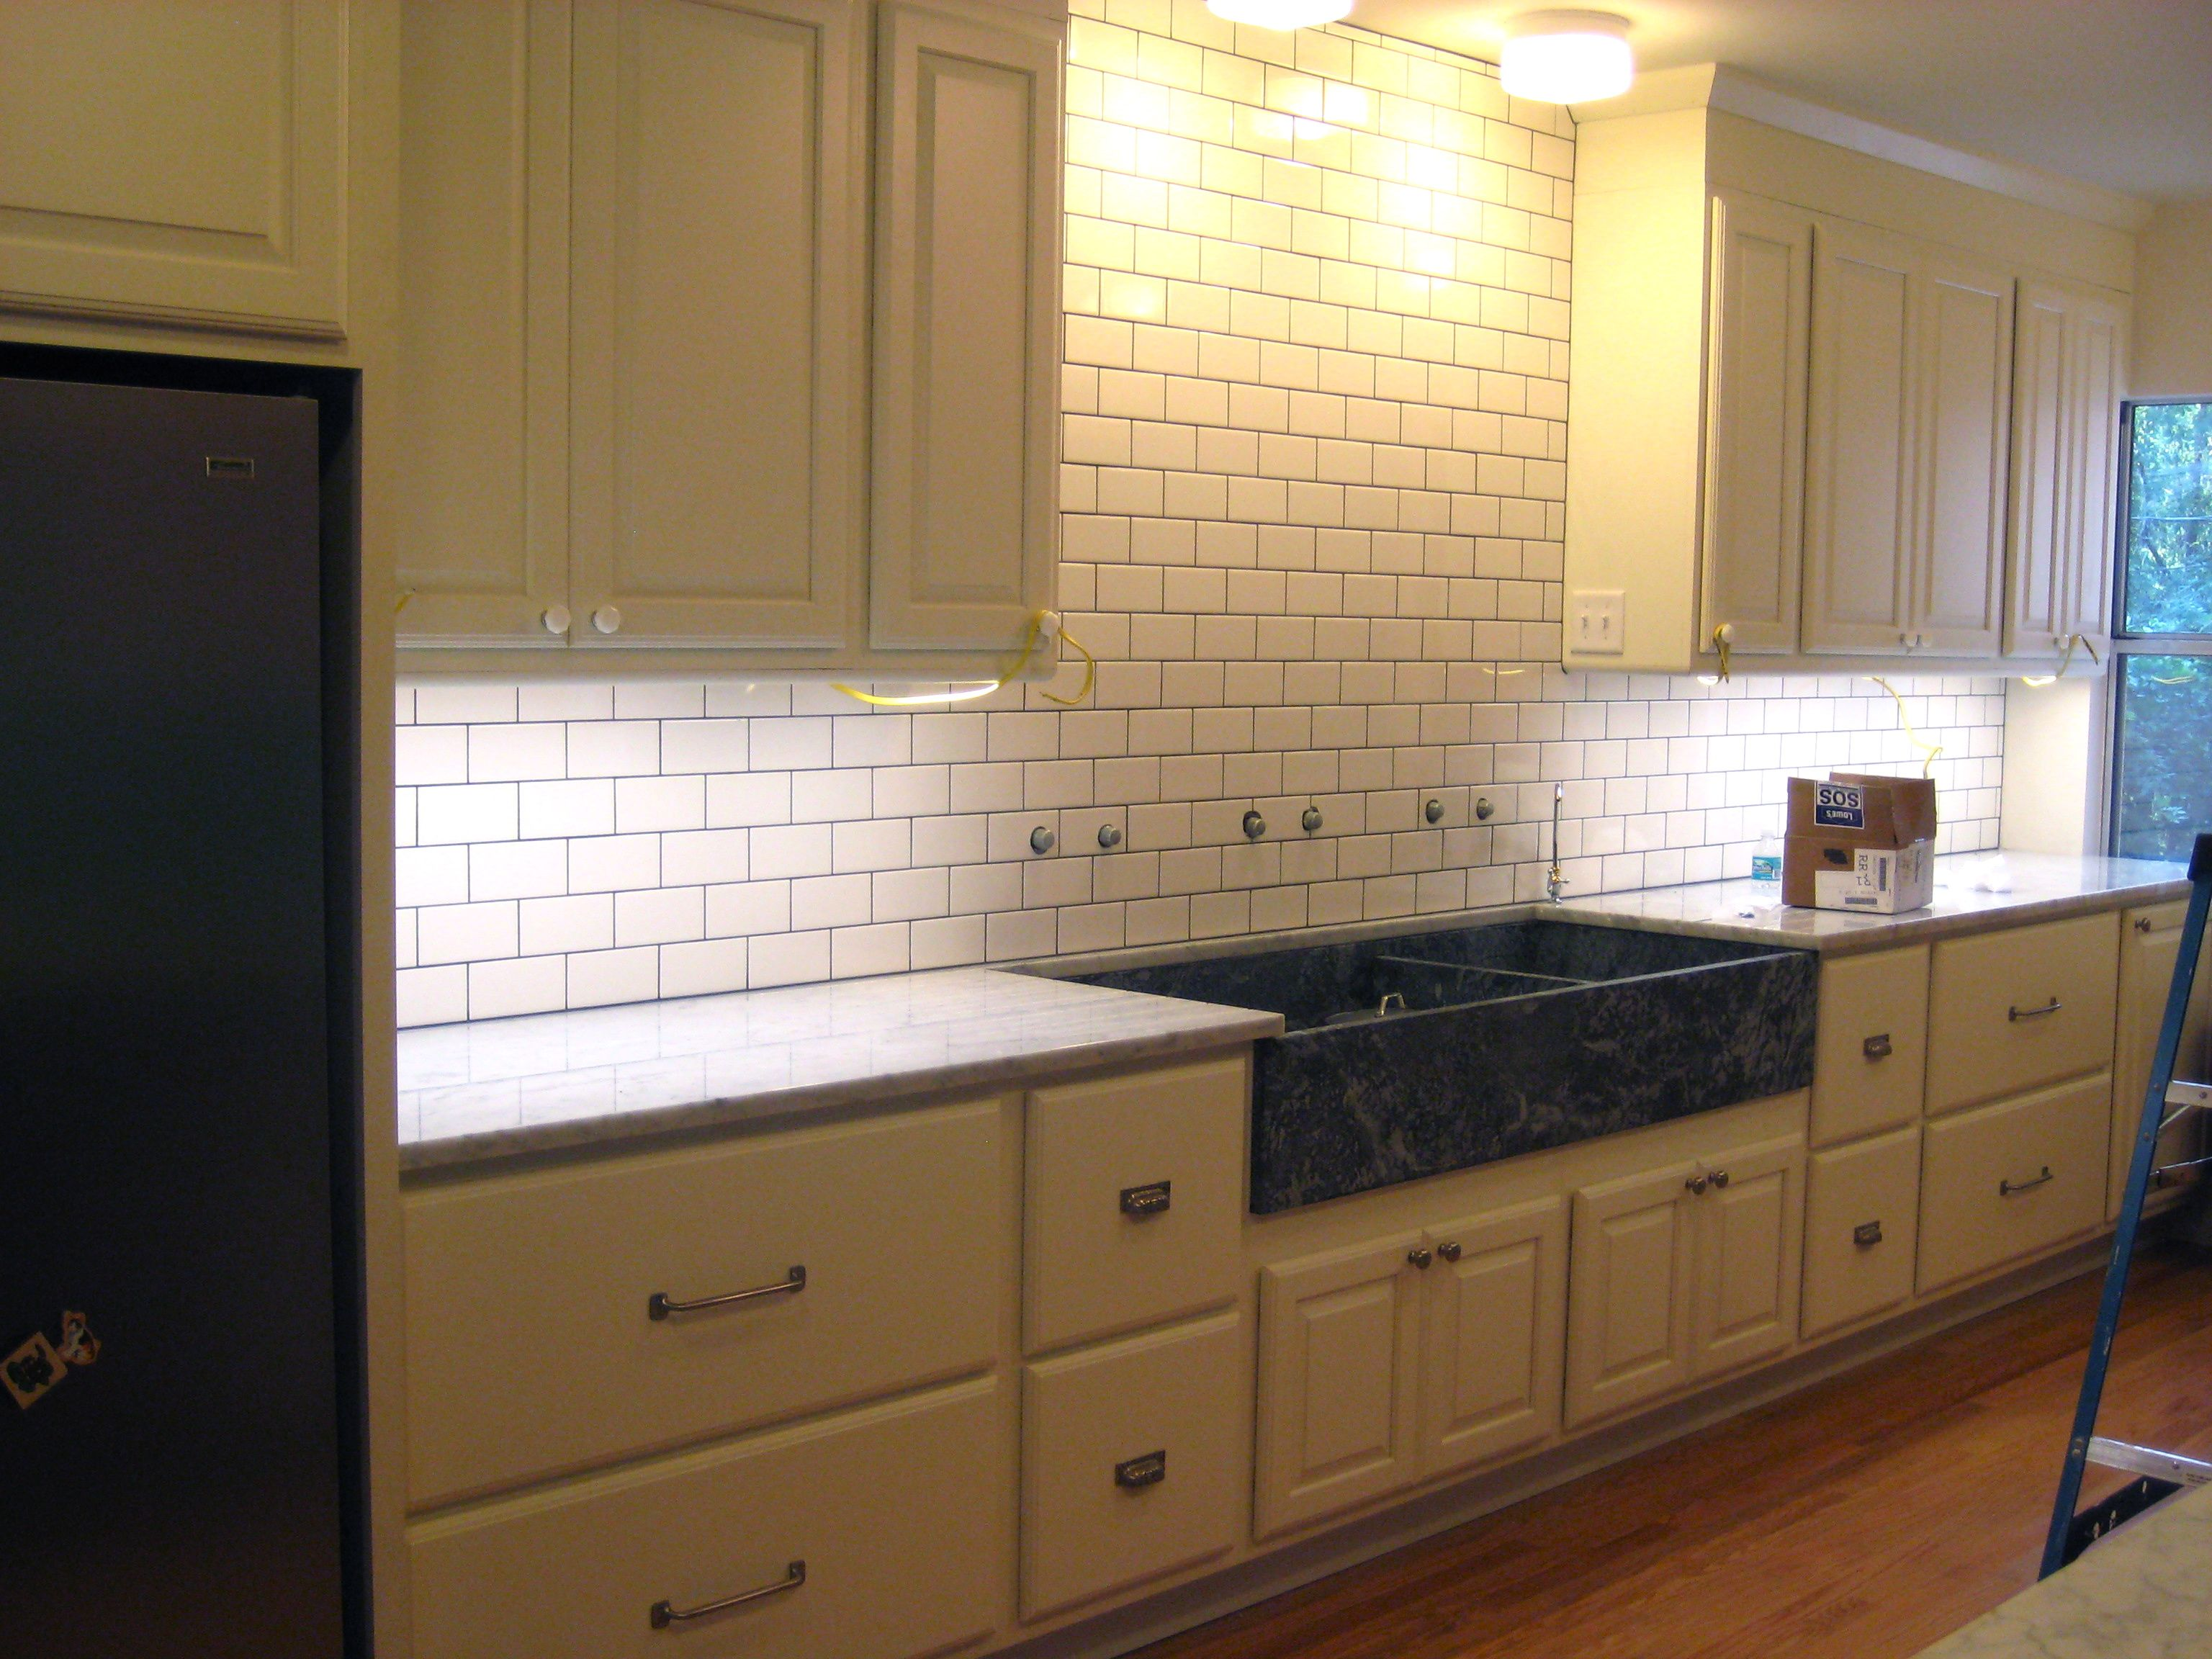 Cream Floor Tiles For Kitchen Subway Tile Backsplash With Expresso Cabinets White Subway Tile